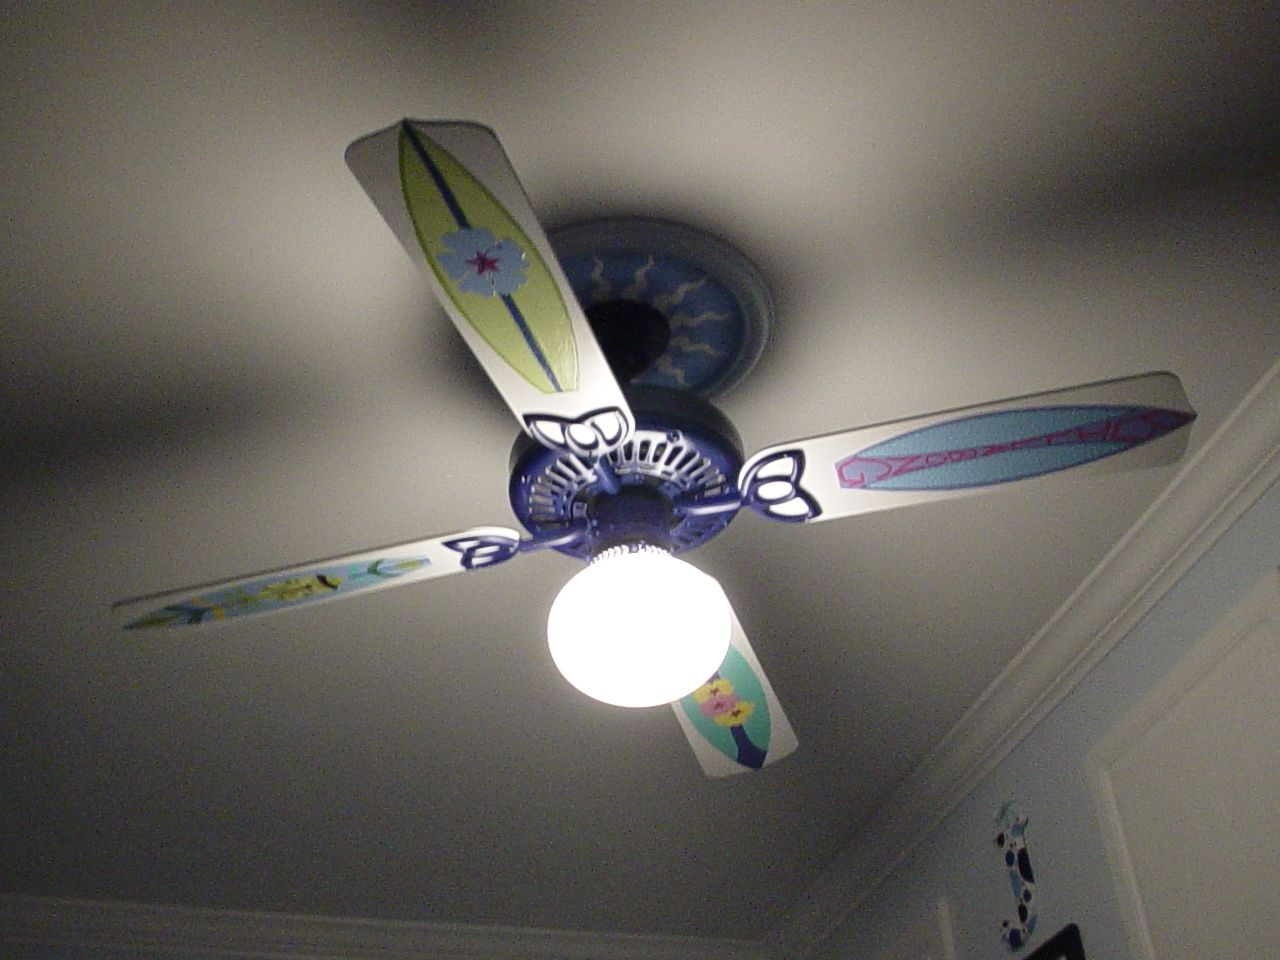 50 ceiling fans for boys room low budget bedroom decorating ideas rh pinterest co uk Sports Ceiling Fan Sports Ceiling Fan